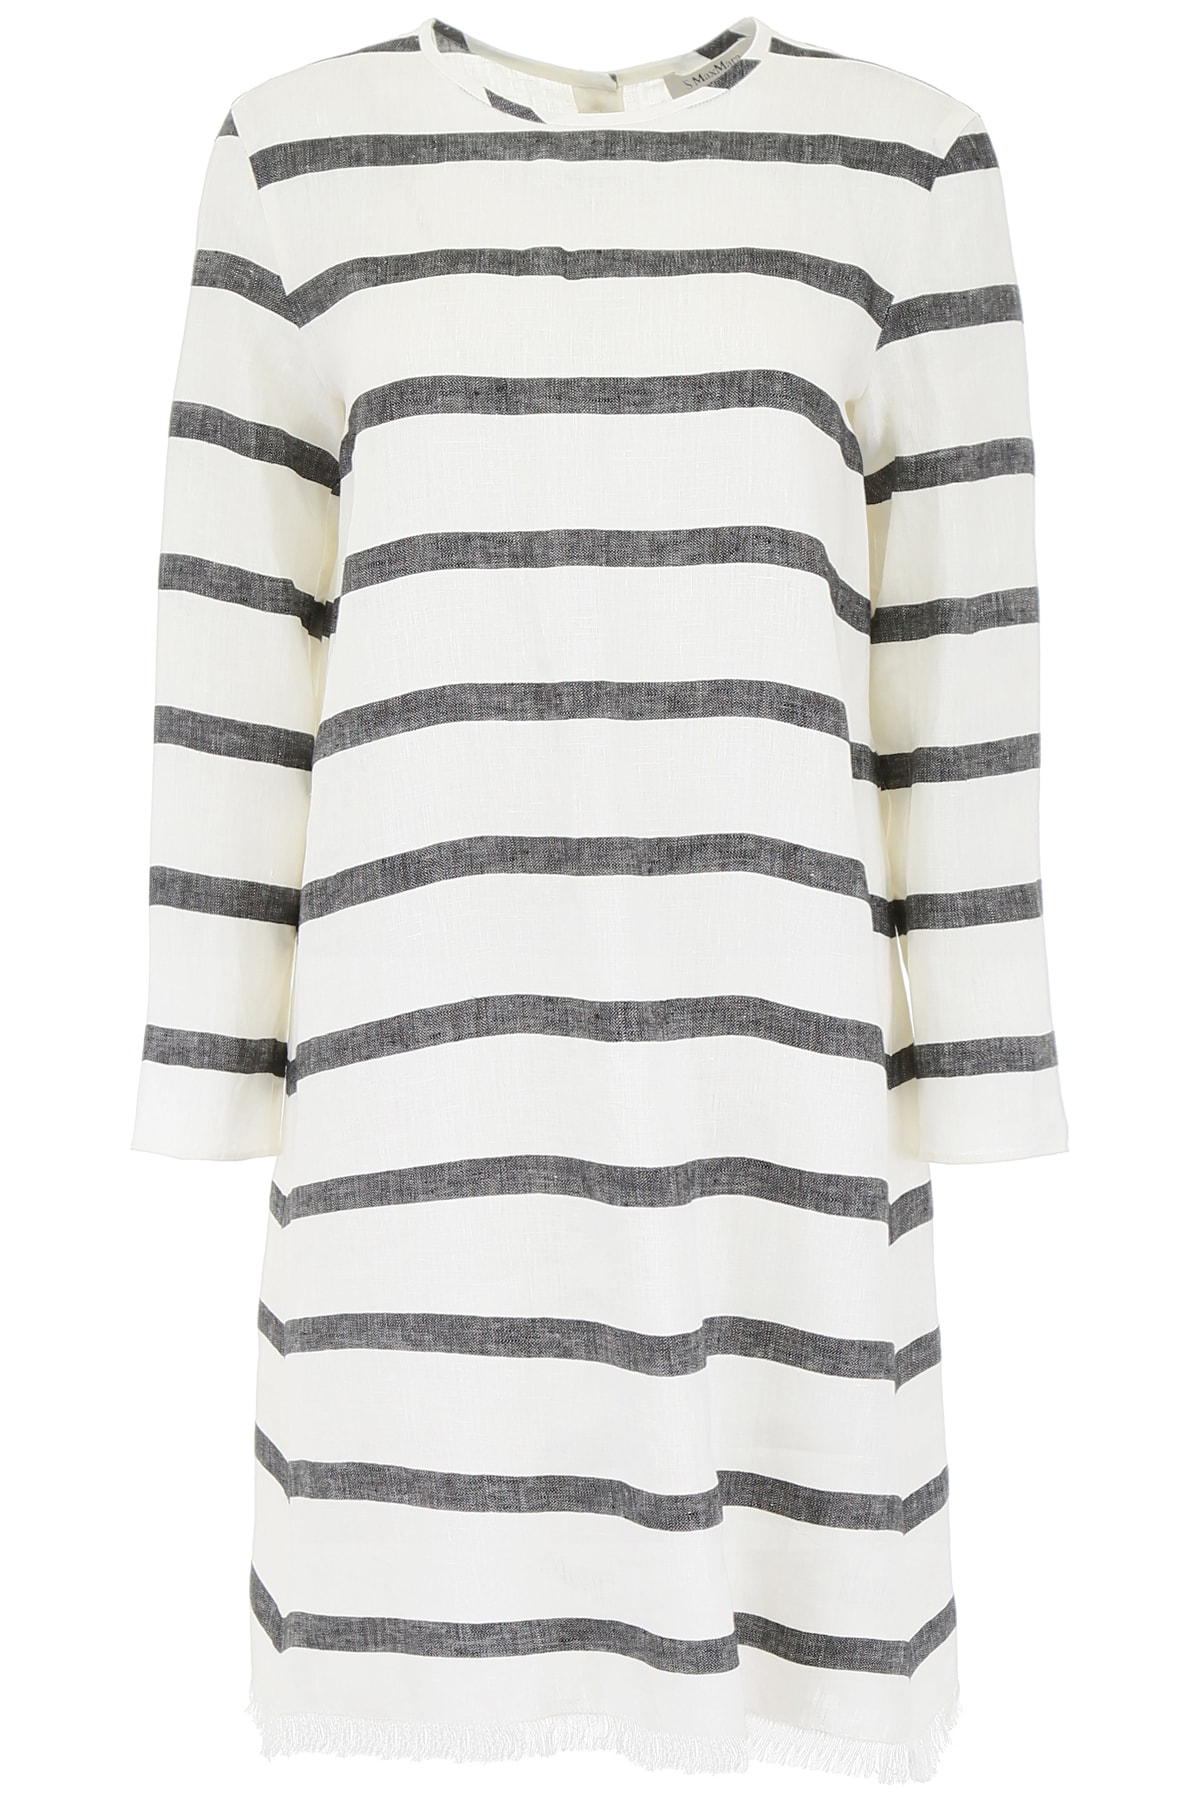 S Max Mara Here is The Cube Striped Shirt Dress